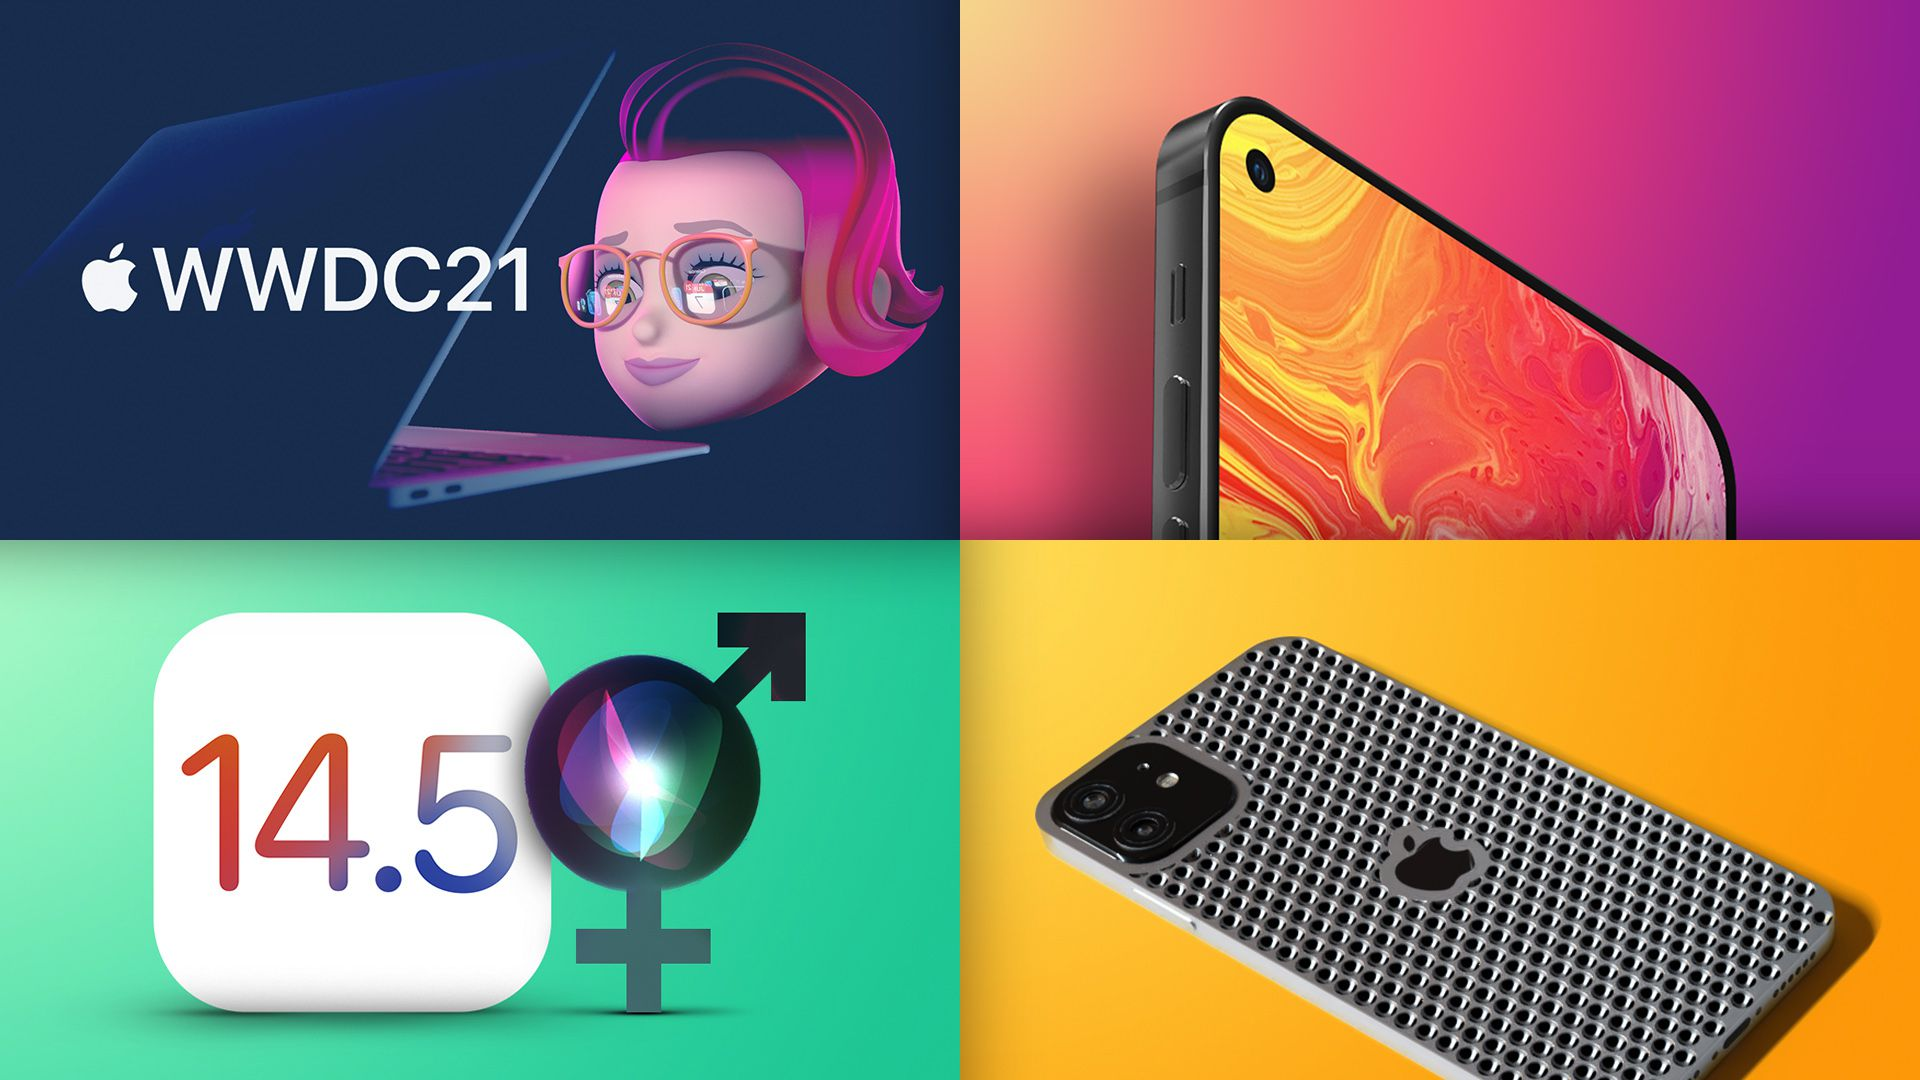 Top Stories: WWDC 2021 Announced, iPhone SE Rumors, 'Cheese Grater' iPhone Design?